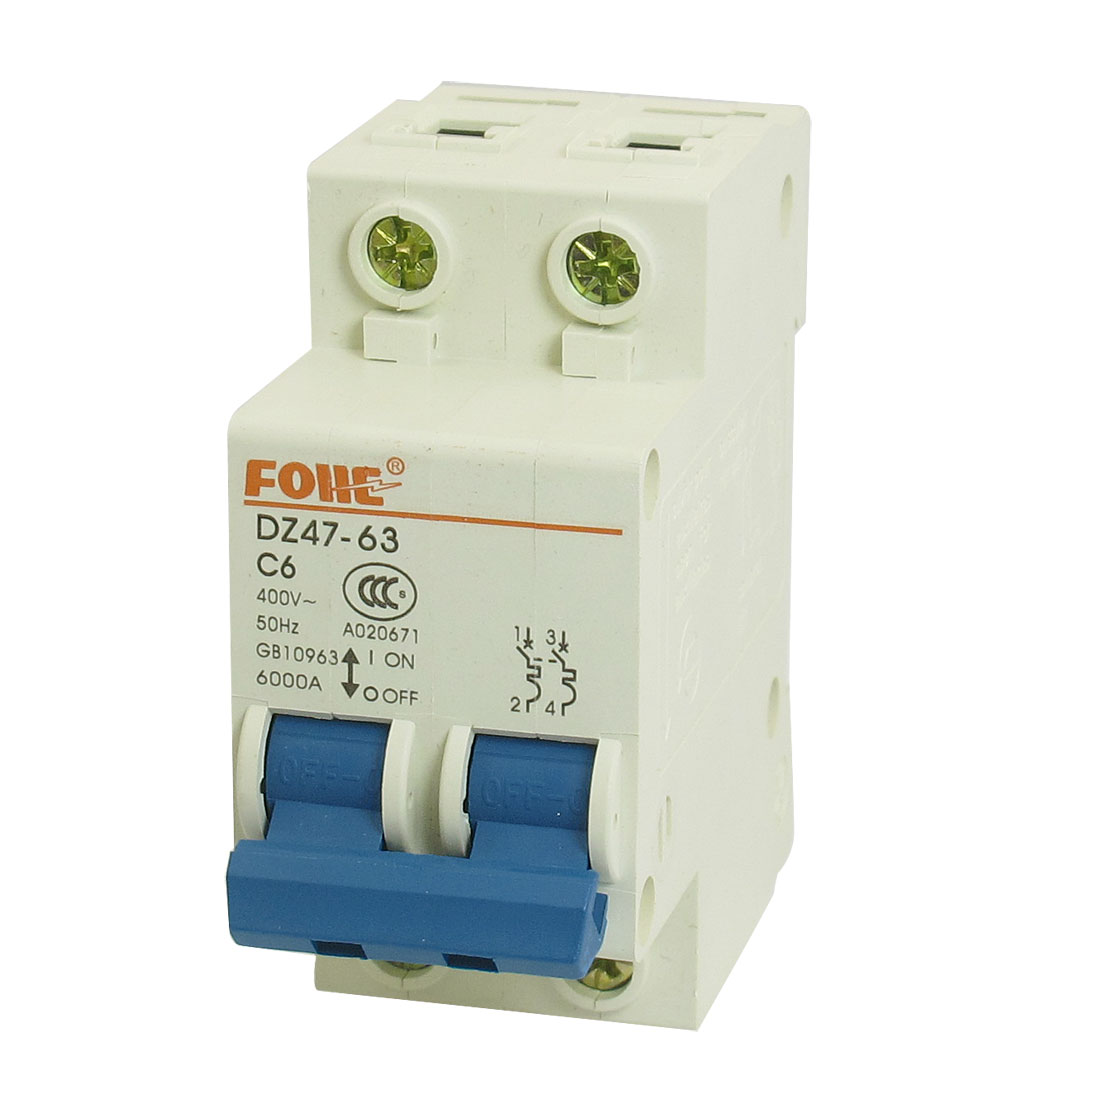 AC 400V 6A 2 Pole 2P On/Off Switch Miniature Circuit Breaker DZ47-63 C6